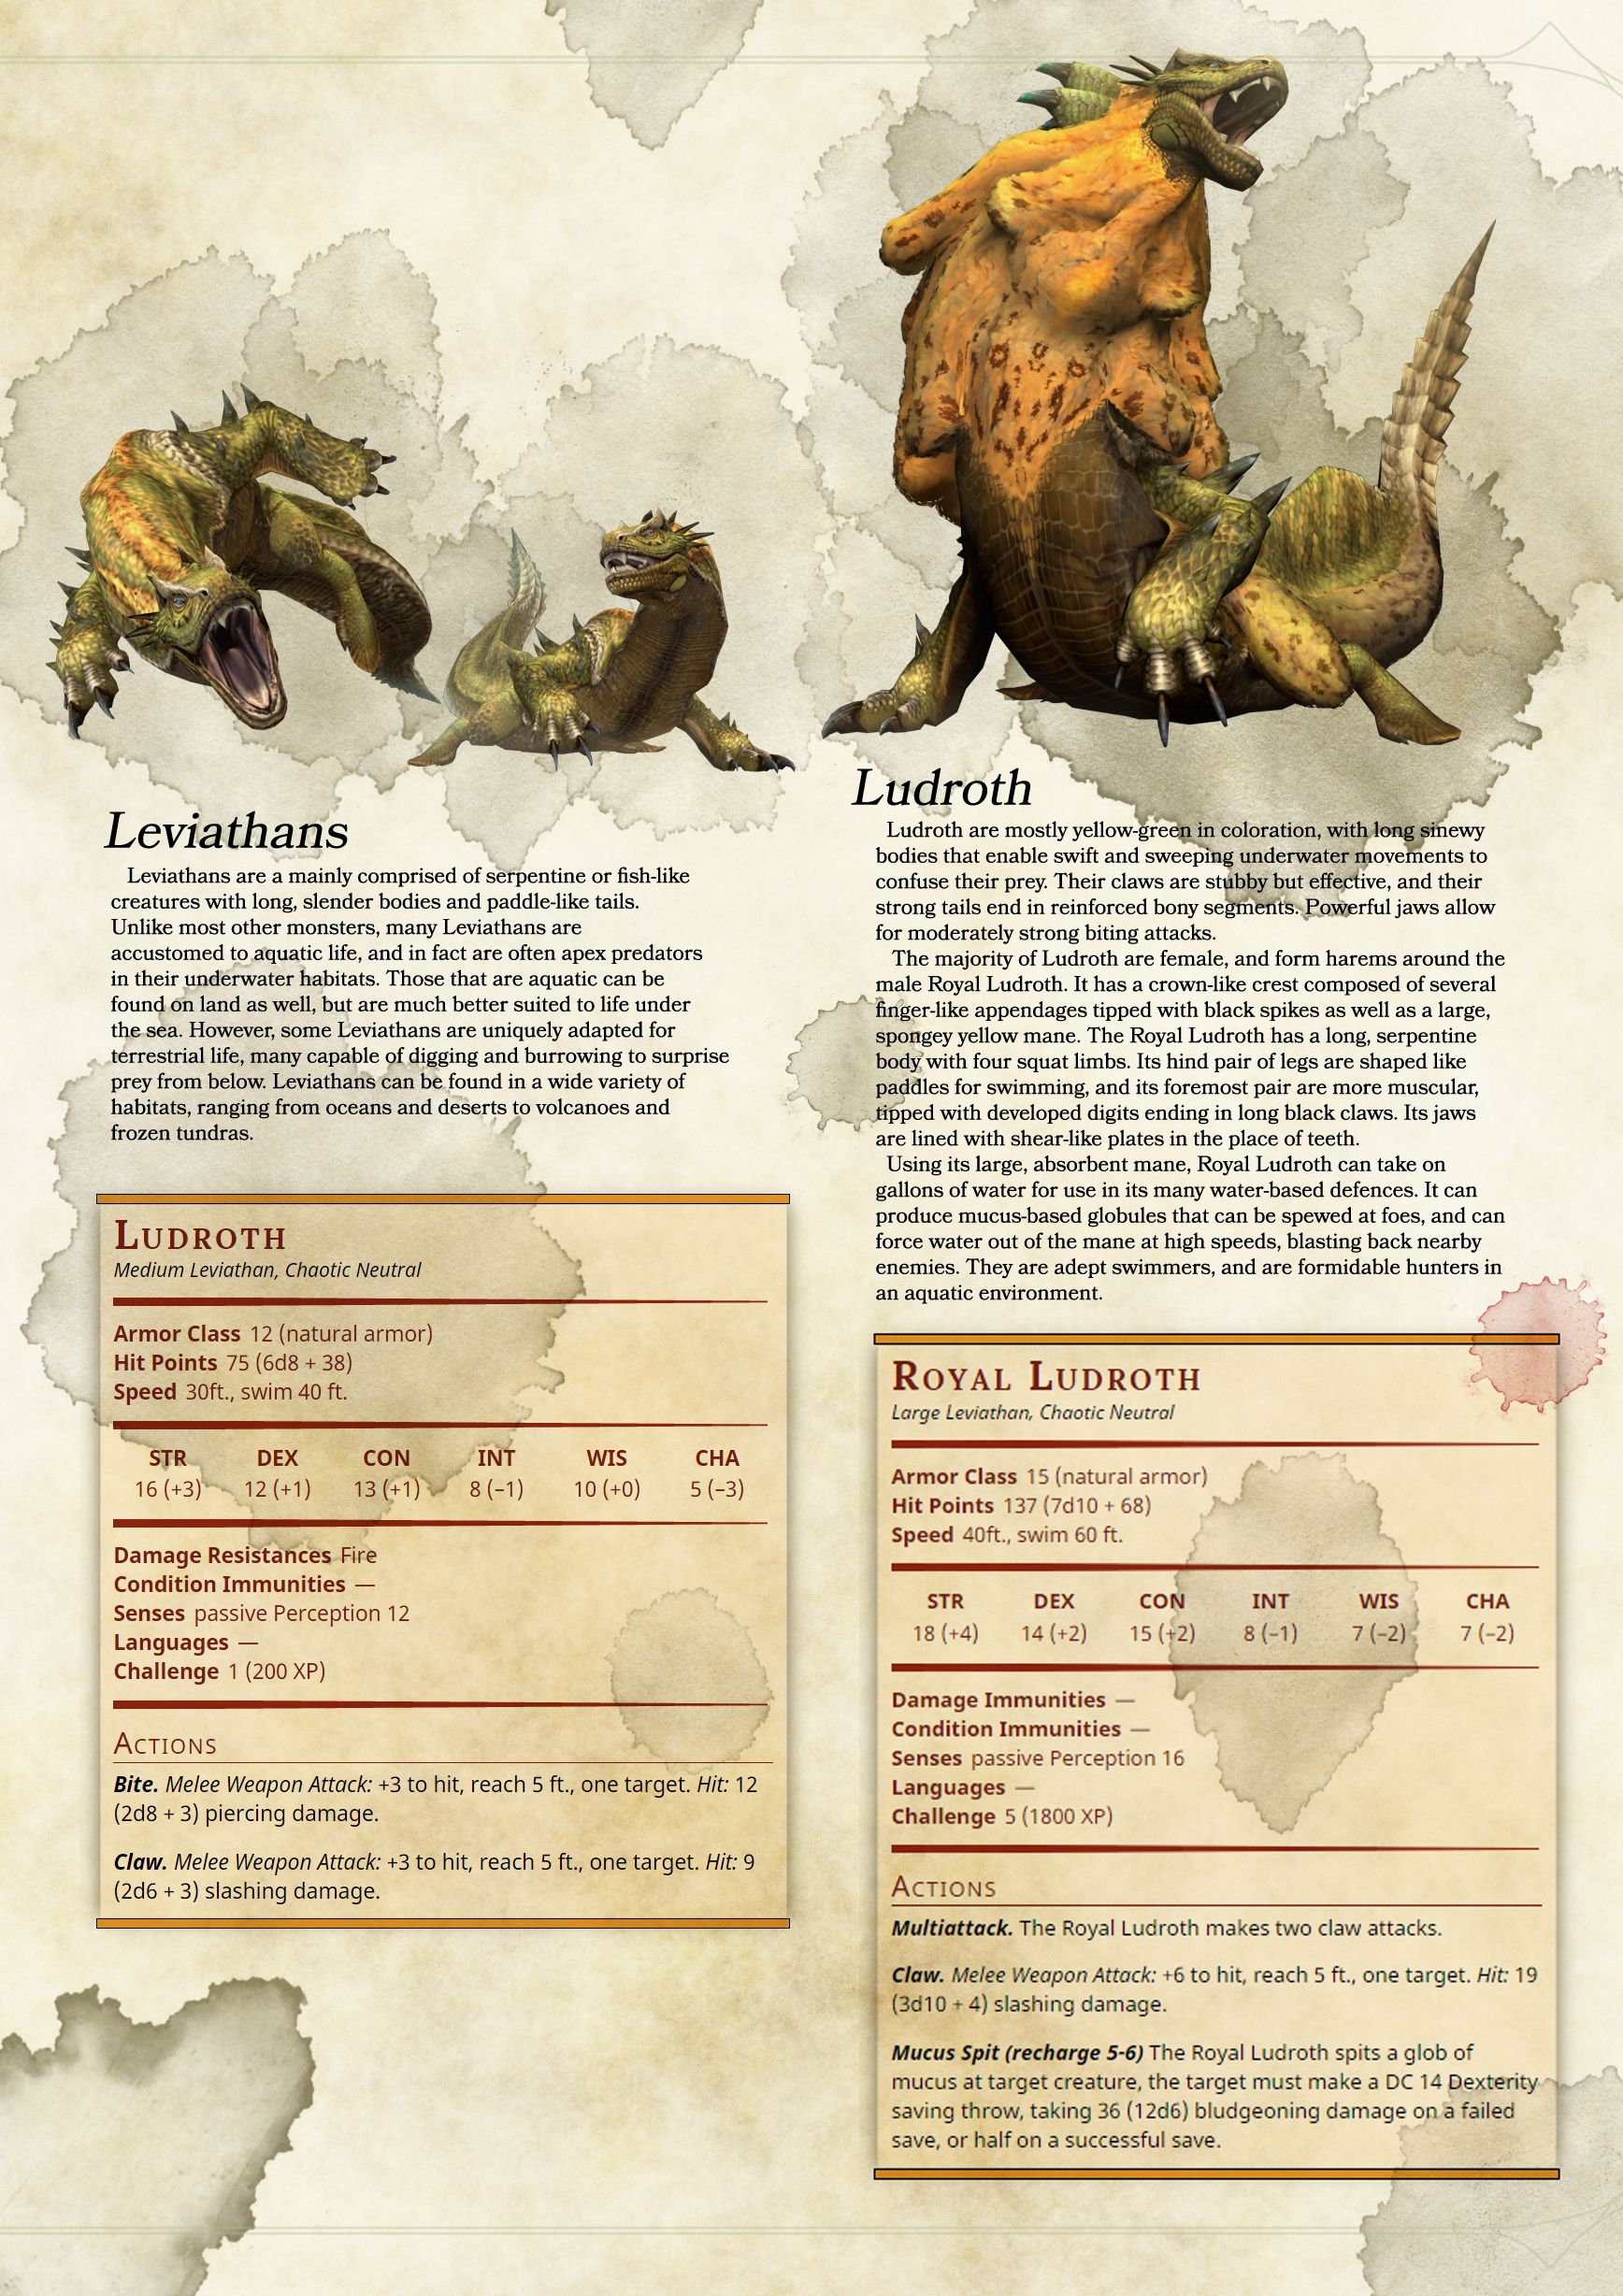 Pin by Michael Kennedy on Awesome | Dnd dragons, Dnd monsters